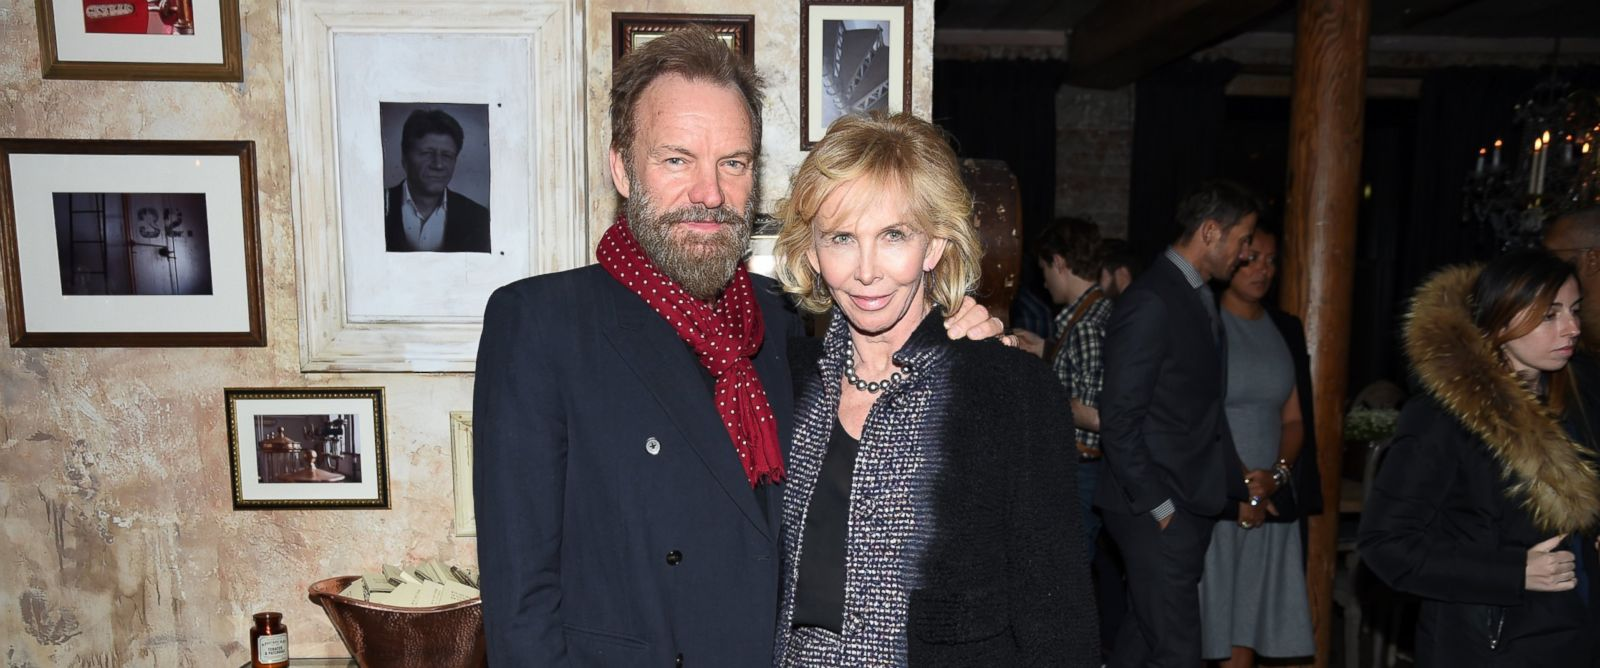 """PHOTO: Sting (L) and Trudie Styler attend a celebration hosted by Harvey Weinstein for Forest Whitaker in Eugene ONeills """"Hughie"""" at Elyx House NYC, Feb. 18, 2016 in New York City."""